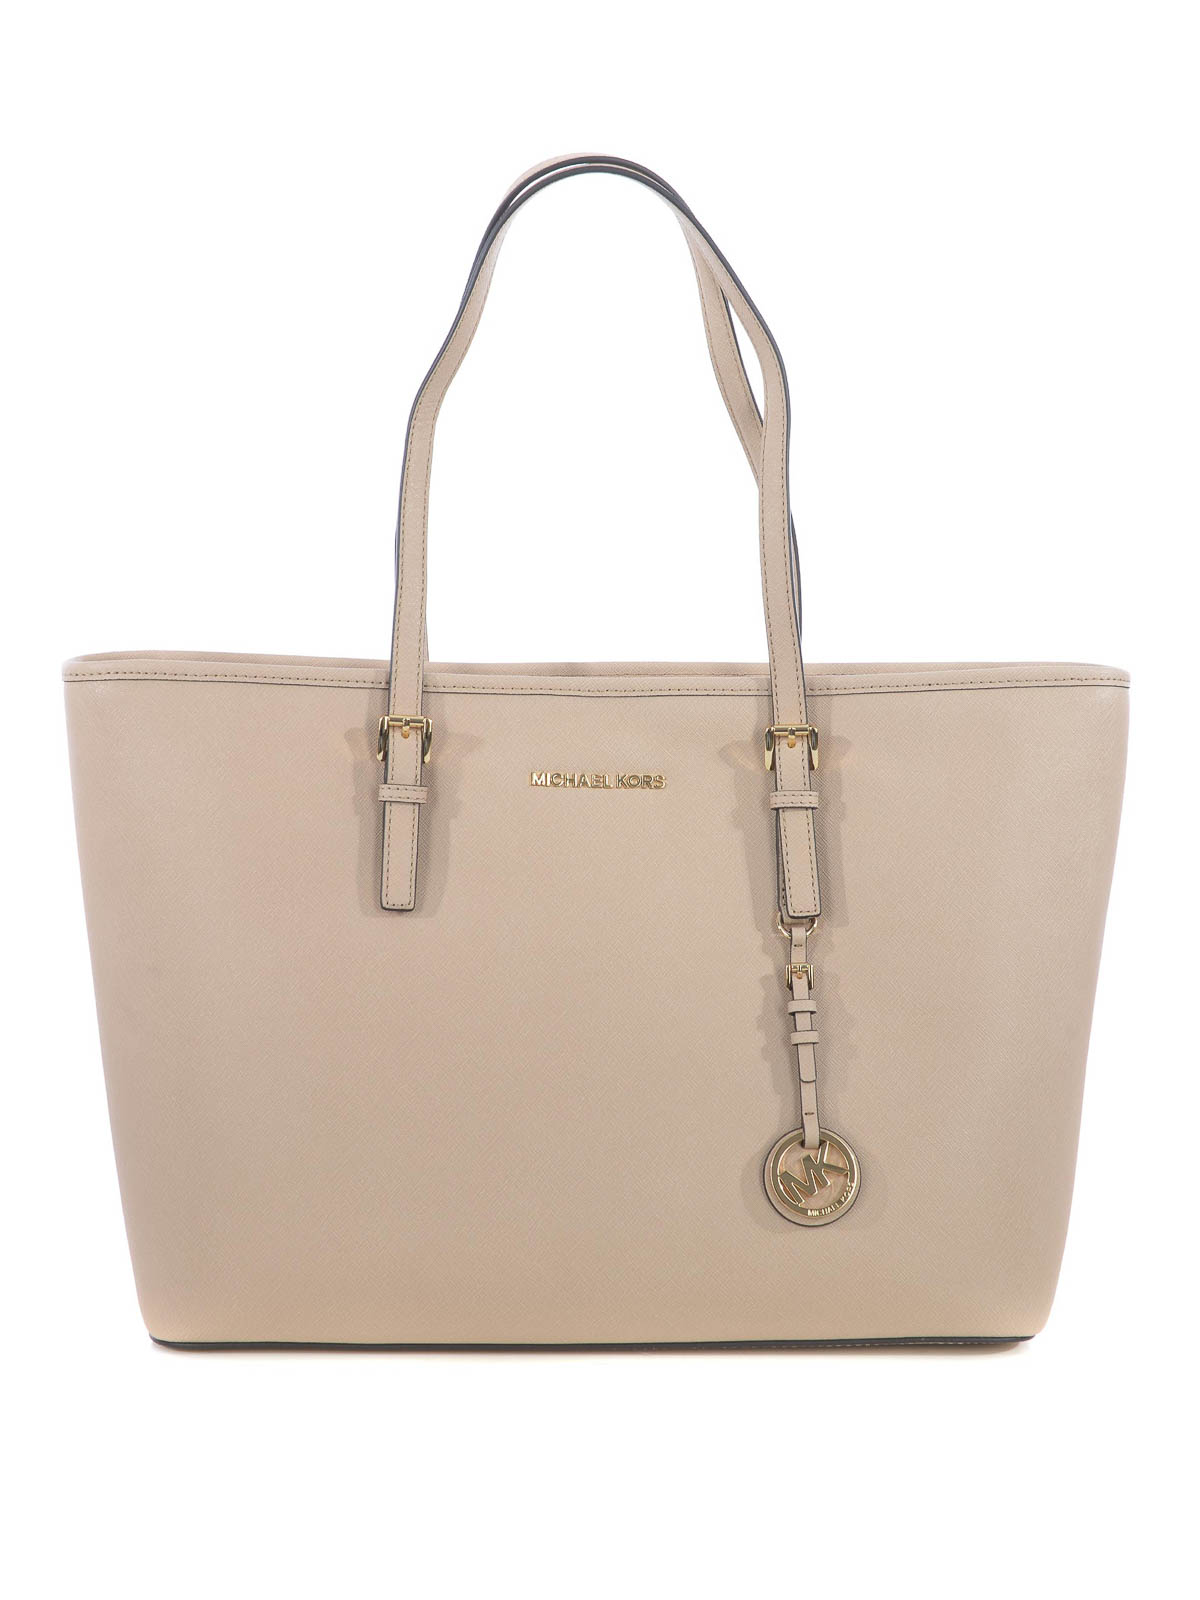 Michael Kors Jet Set Tote Laukku : Jet set travel medium tote by michael kors totes bags